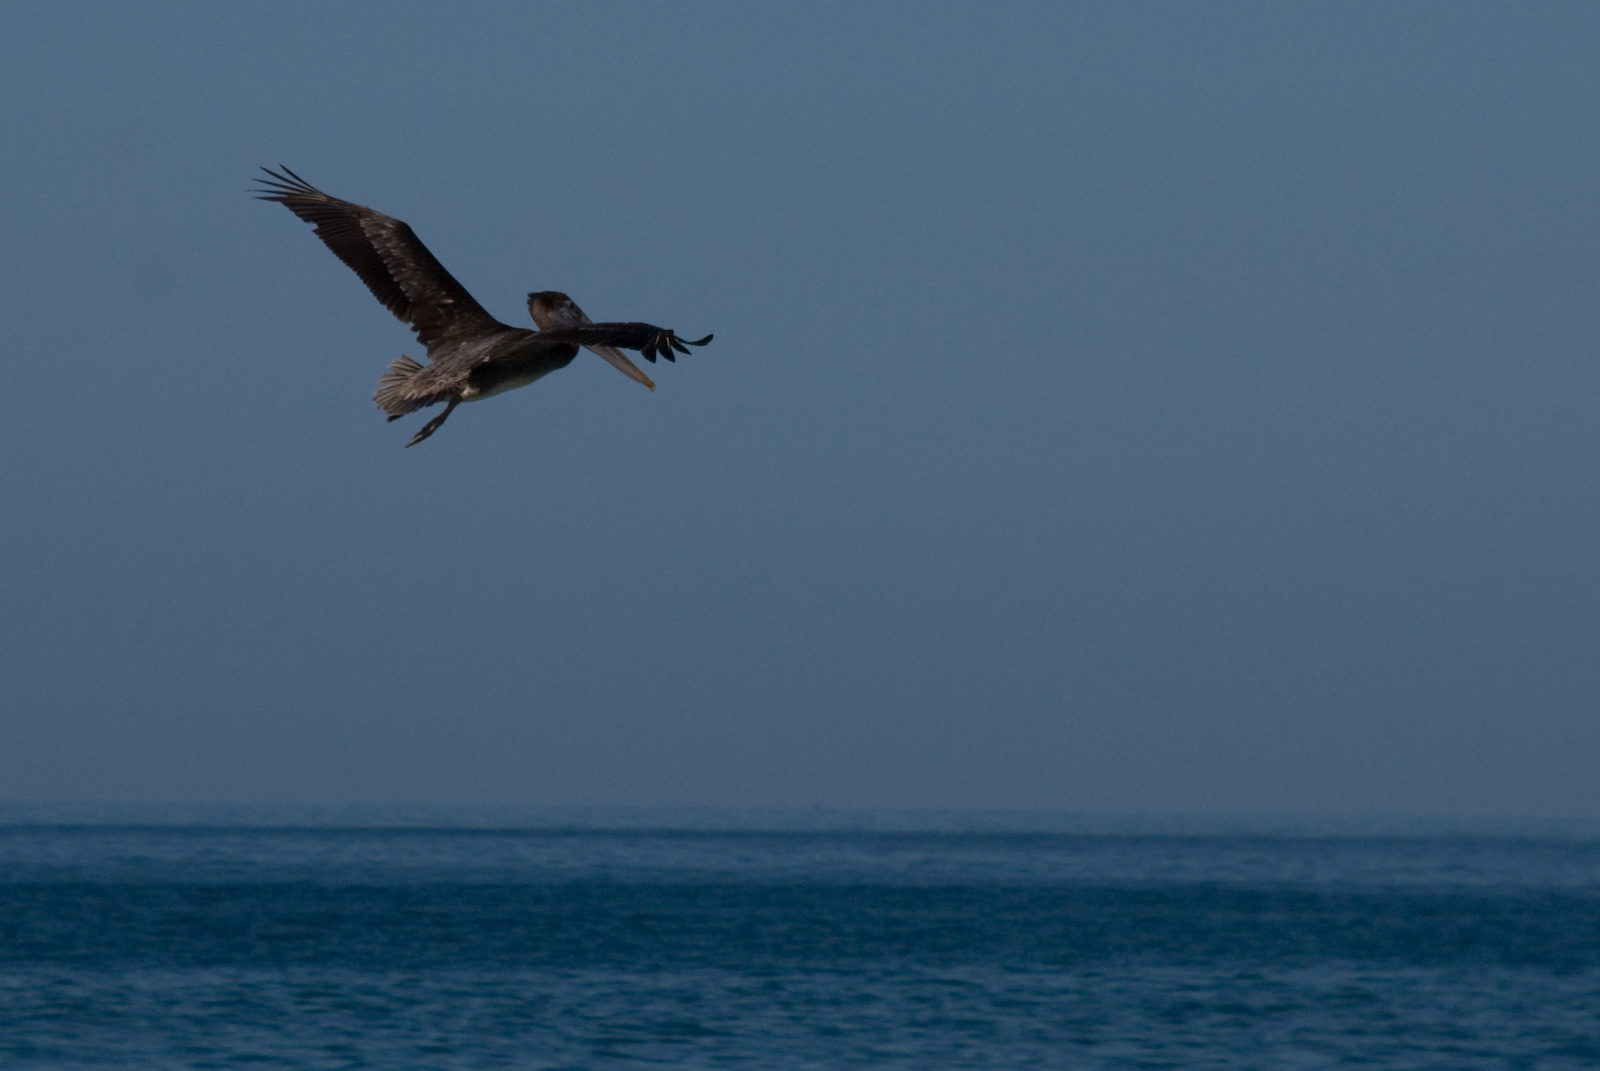 DSC_2124.jpg - Pelican in flight